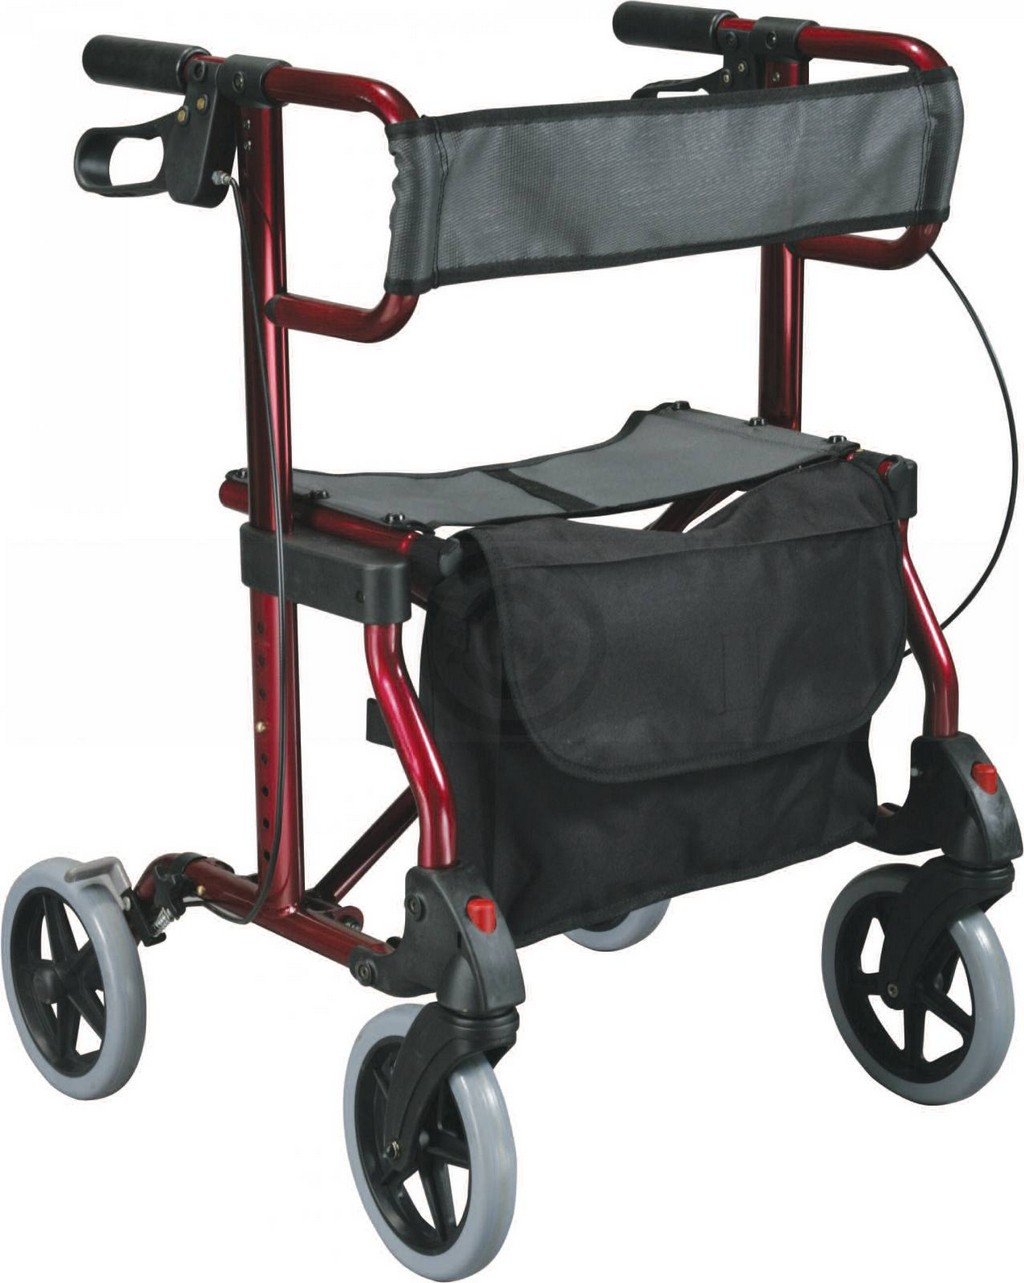 where to buy a used rollator, medline rollator wheel replacement, norge rollator compressor, roscoe rollator